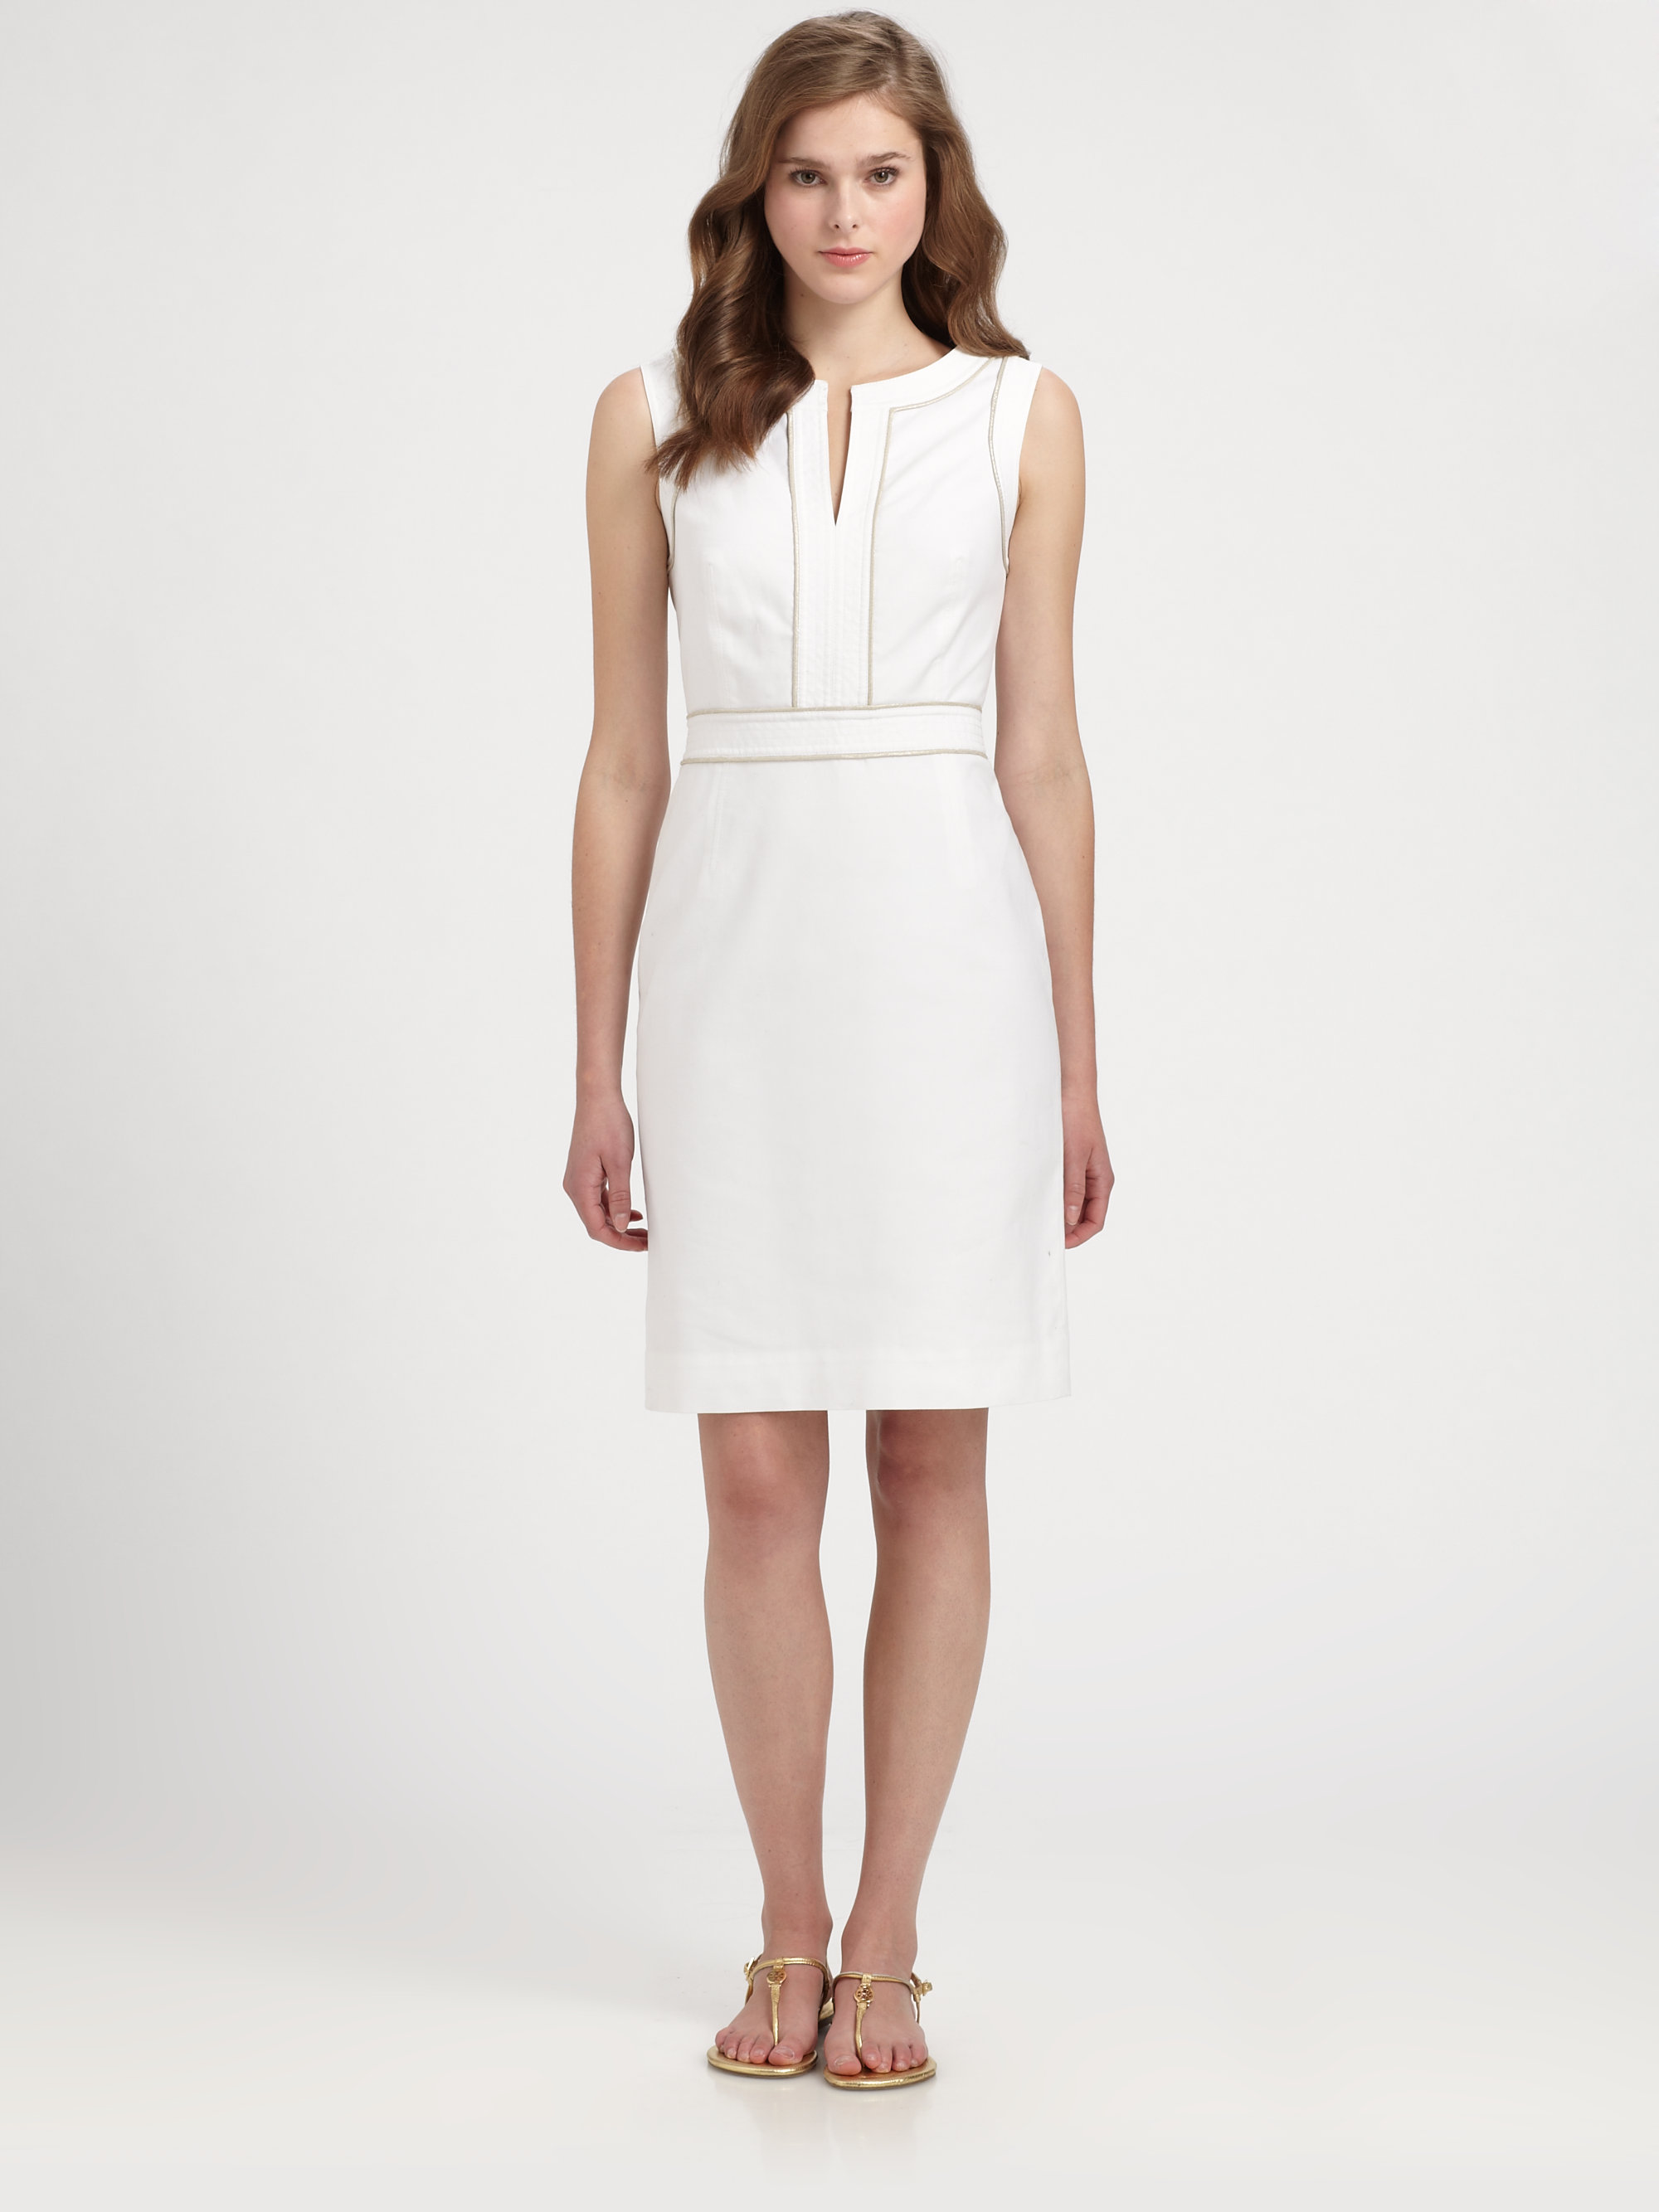 Lyst tory burch zoie dress in white for Tory burch fashion island